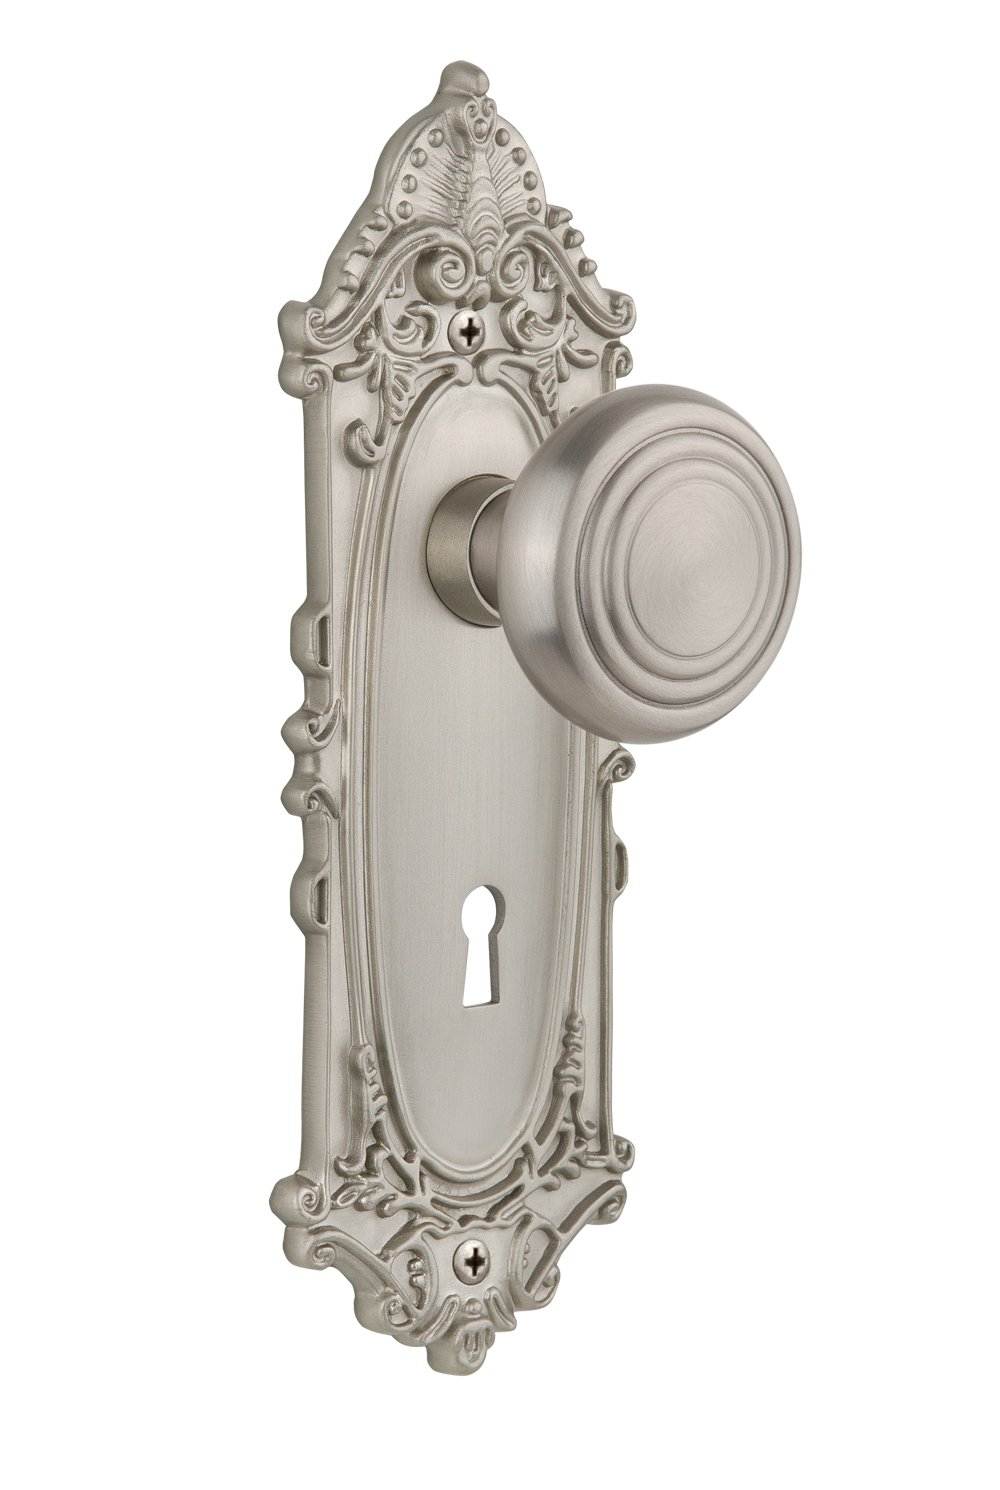 Unlacquered Brass Nostalgic Warehouse Victorian Plate with Keyhole Deco Knob Mortise